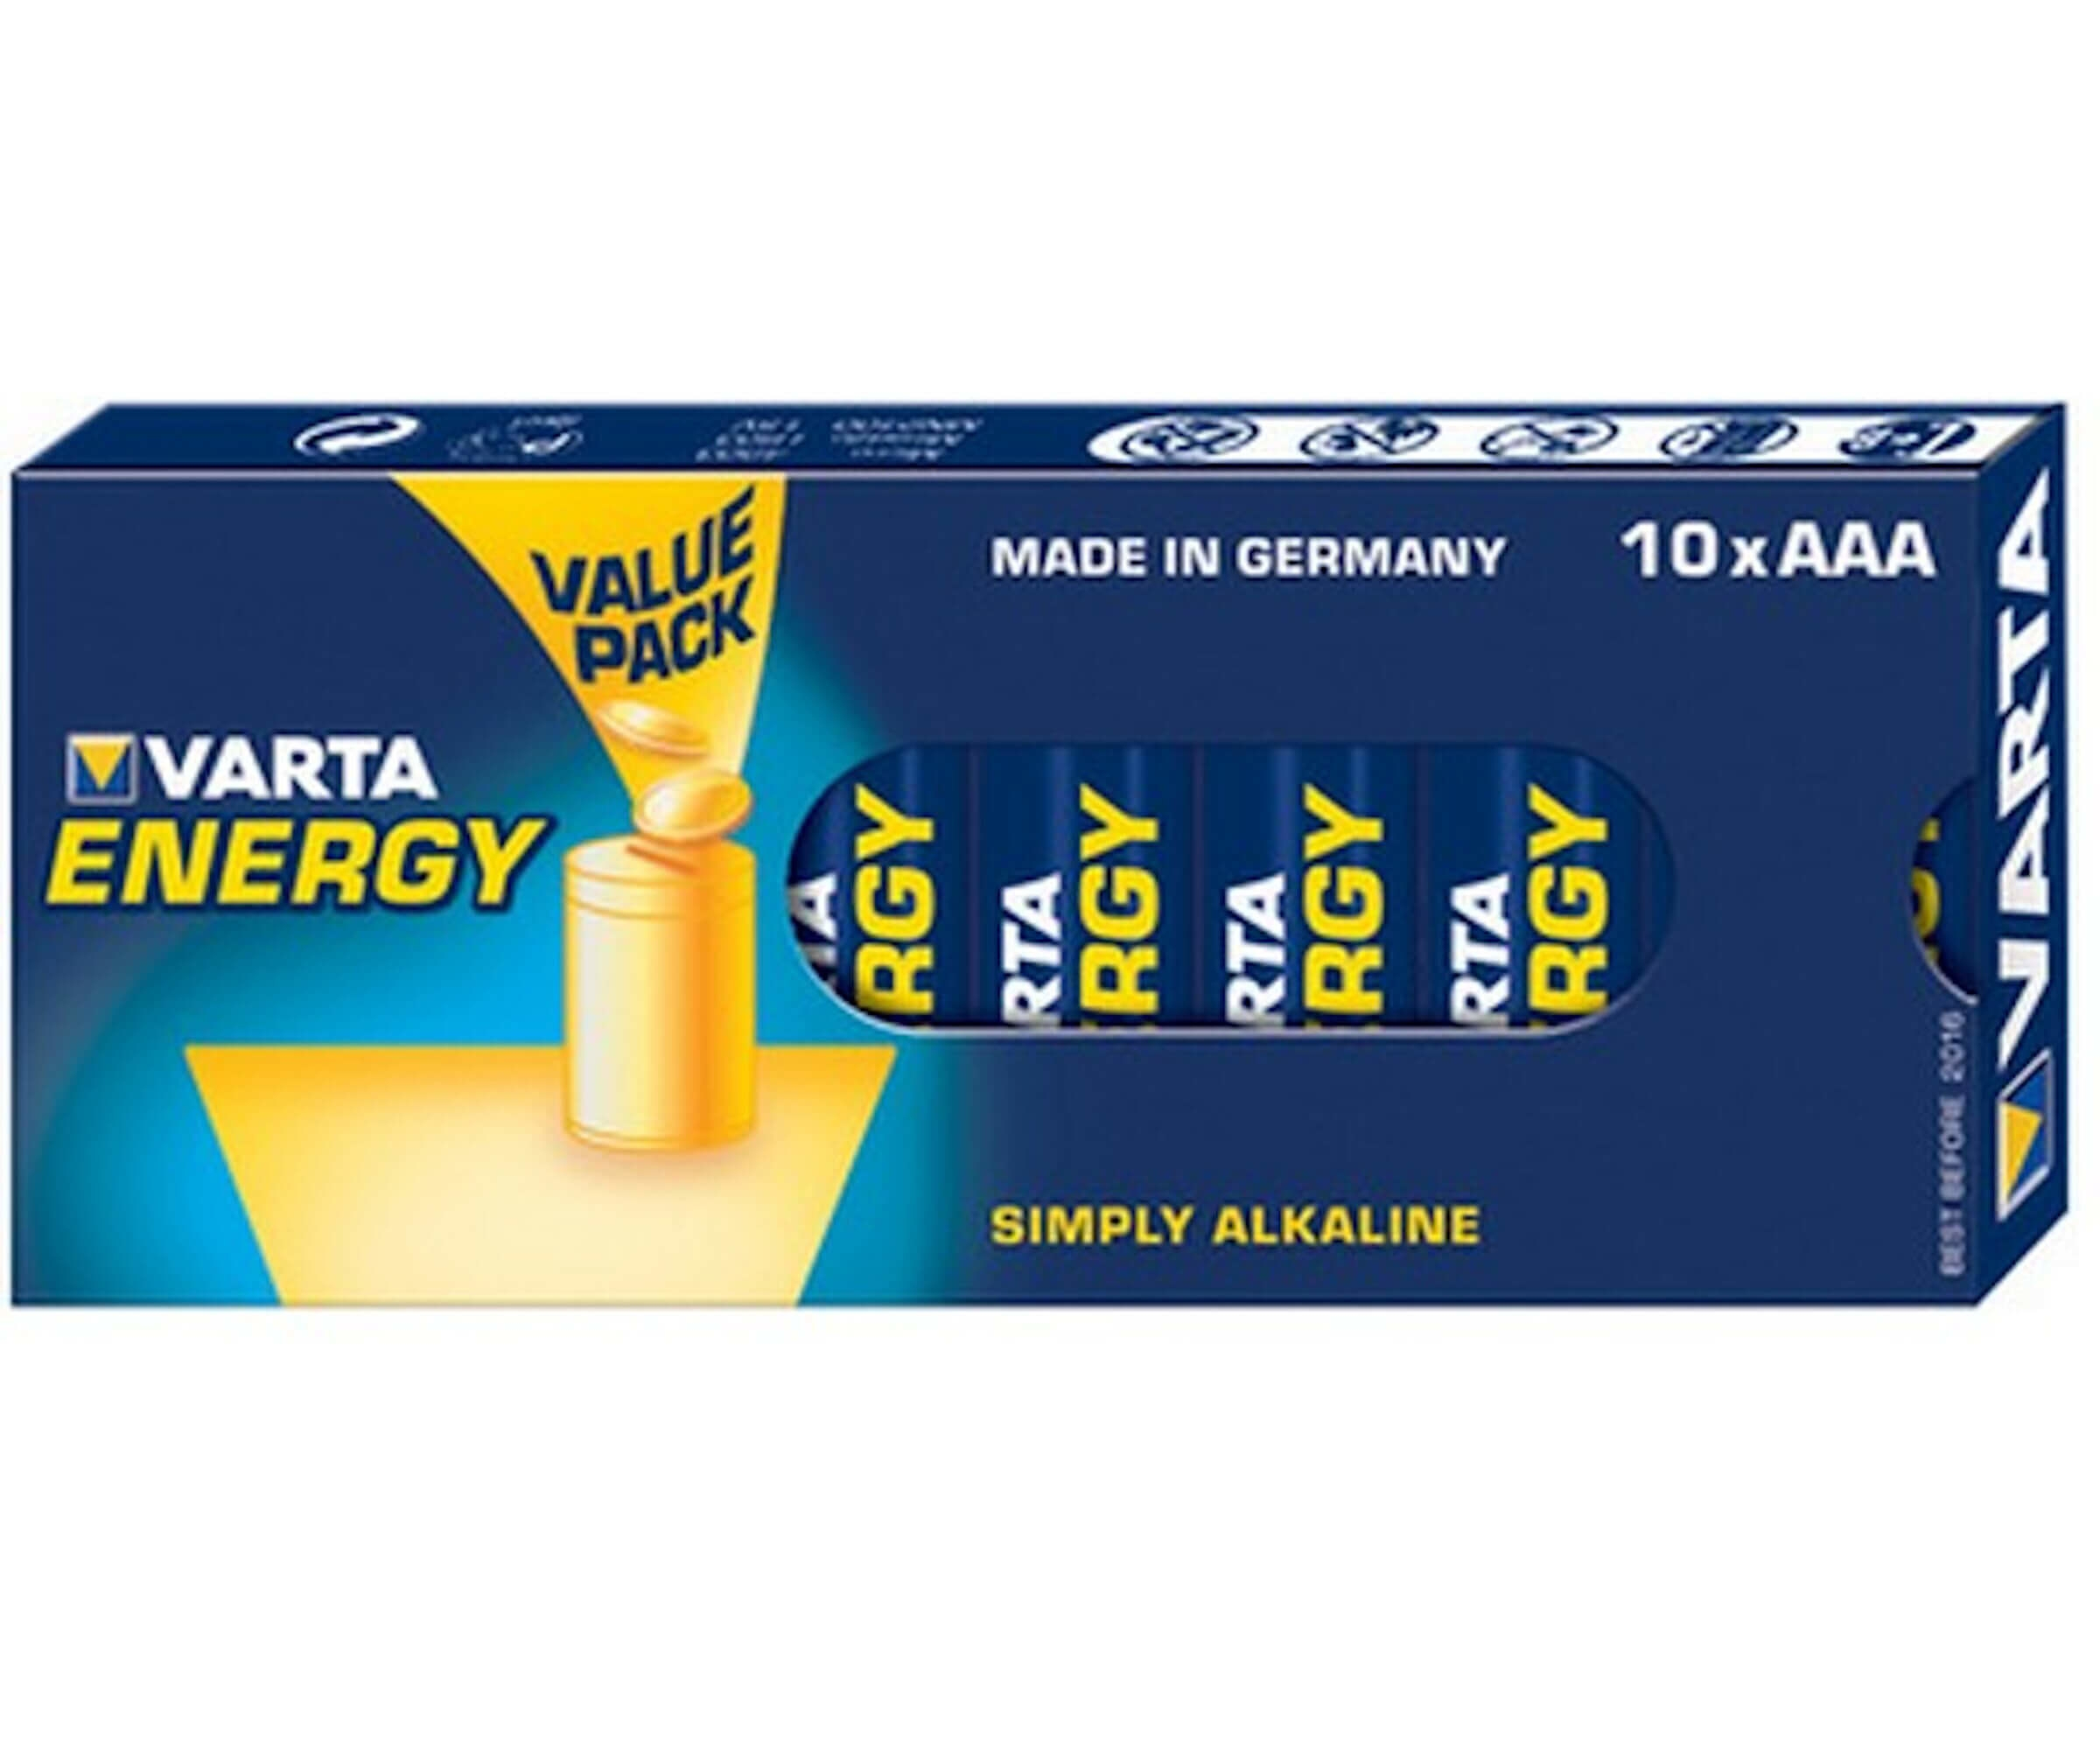 Varta Energy, Retail Box (10-Pack)